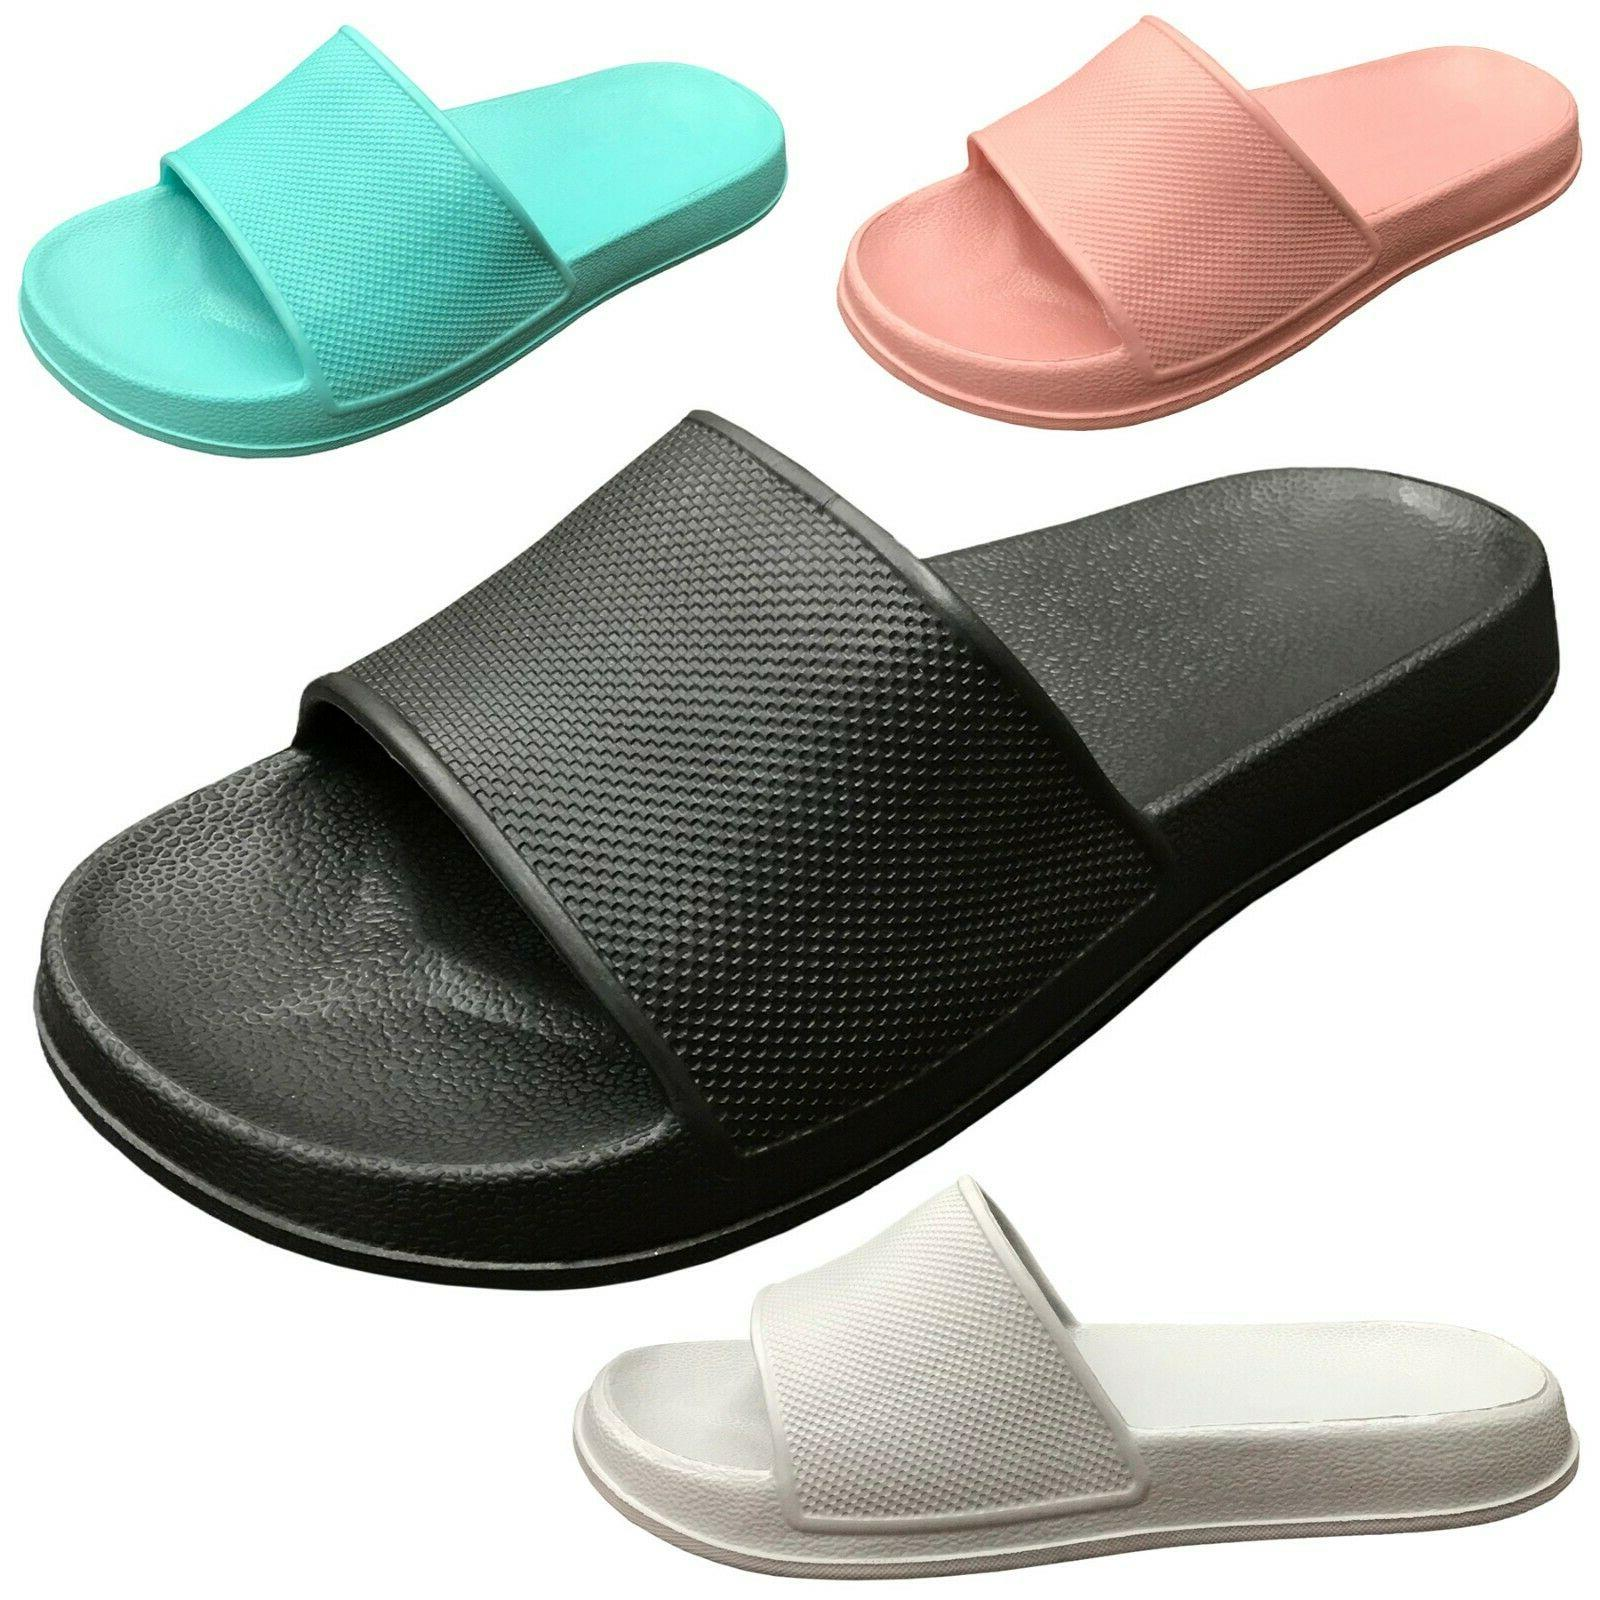 new womens slide sandals solid colored soft